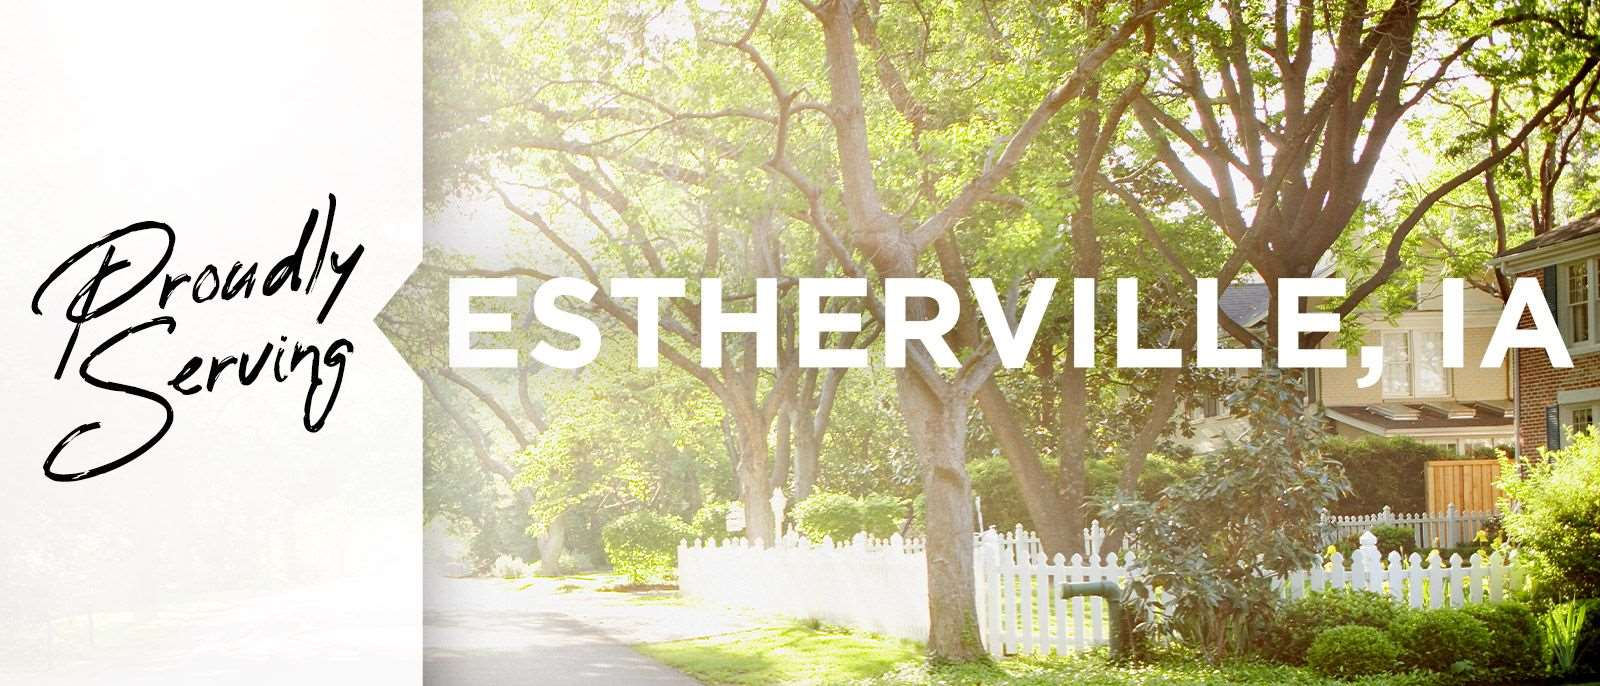 Chevy Buick GMC Dealer | Serving Estherville, IA | Motor Inn of Estherville